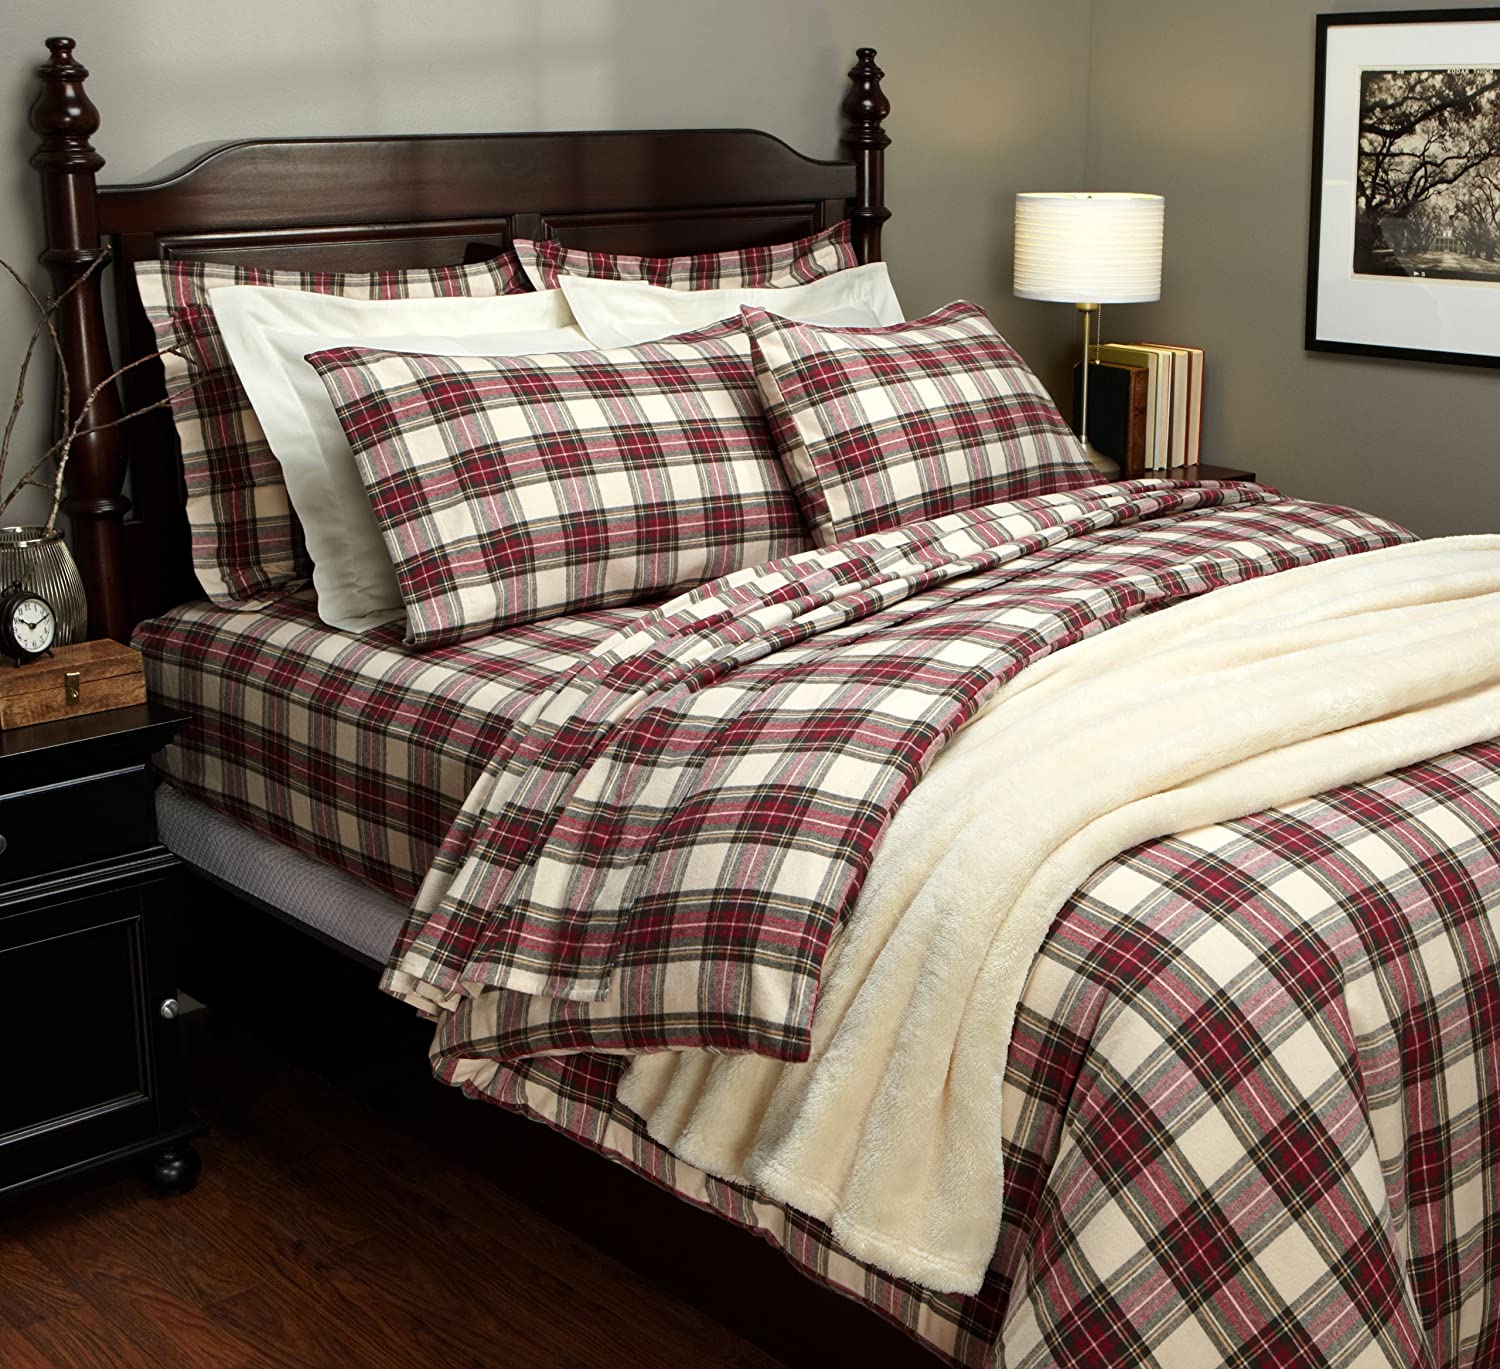 Comforter Cover Full Red And Beige Cream Bedding Ease Bedding With Style